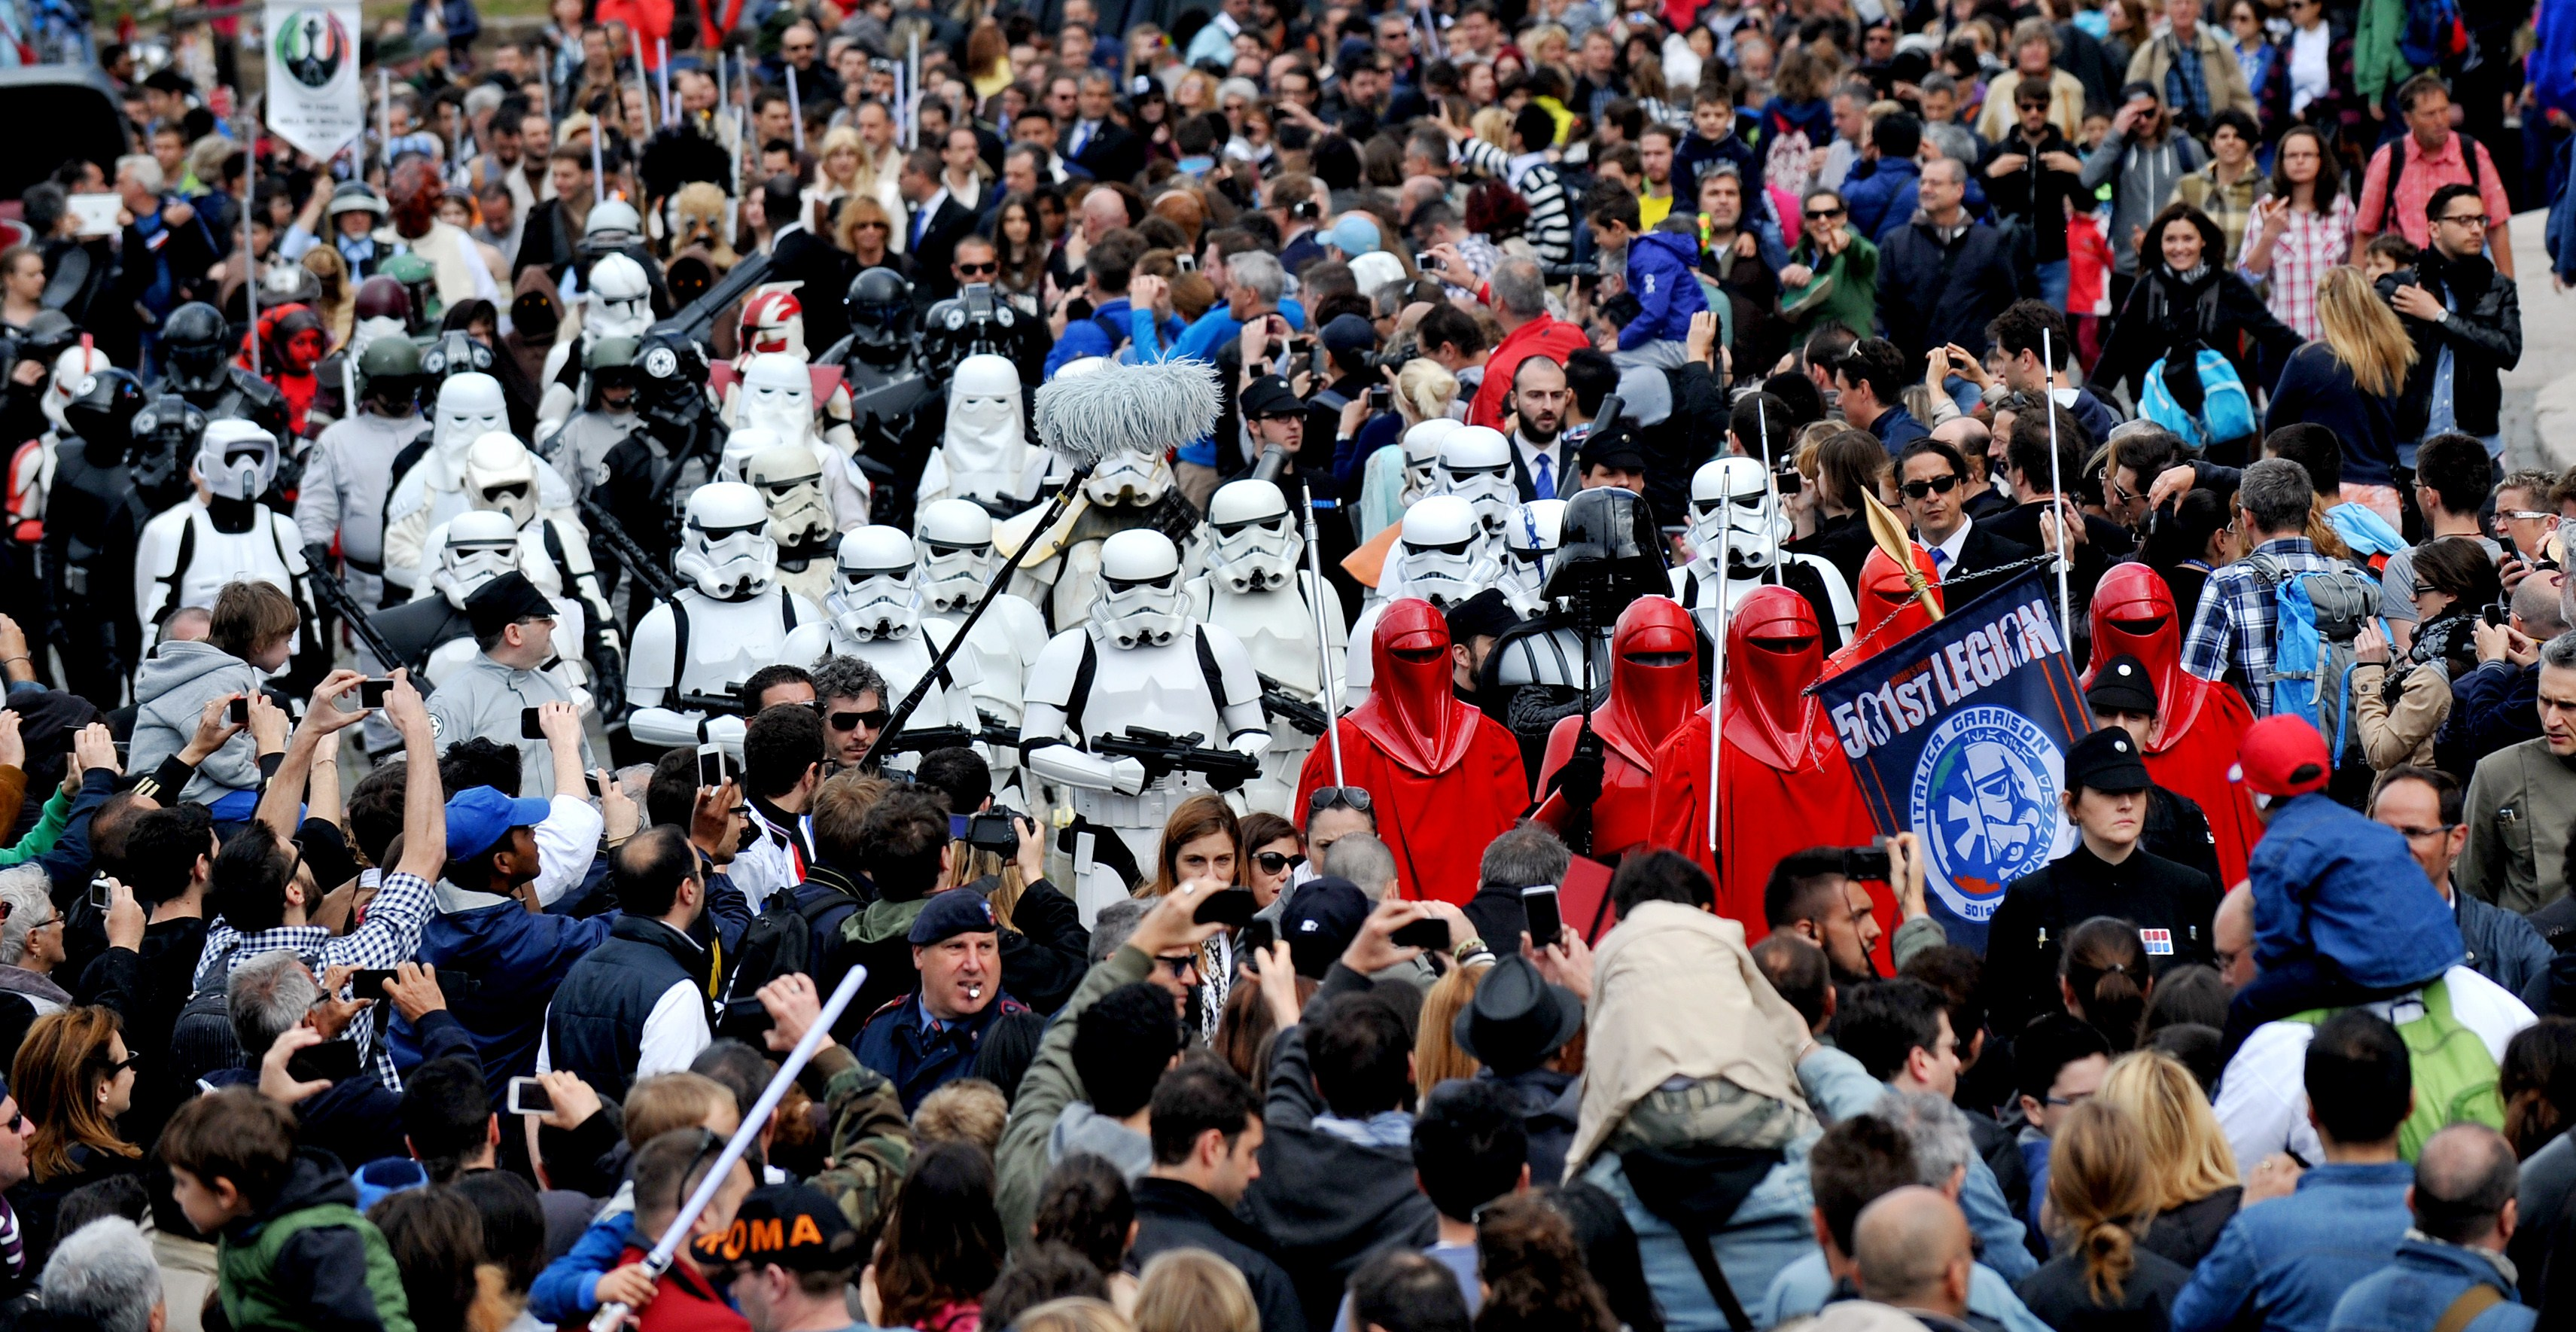 "Members of the Star Wars fan club celebrate ""Star Wars Day"" in front of the Colosseum in central Rome on May 4, 2014 AFP PHOTO / TIZIANA FABI        (Photo credit should read TIZIANA FABI/AFP/Getty Images)"